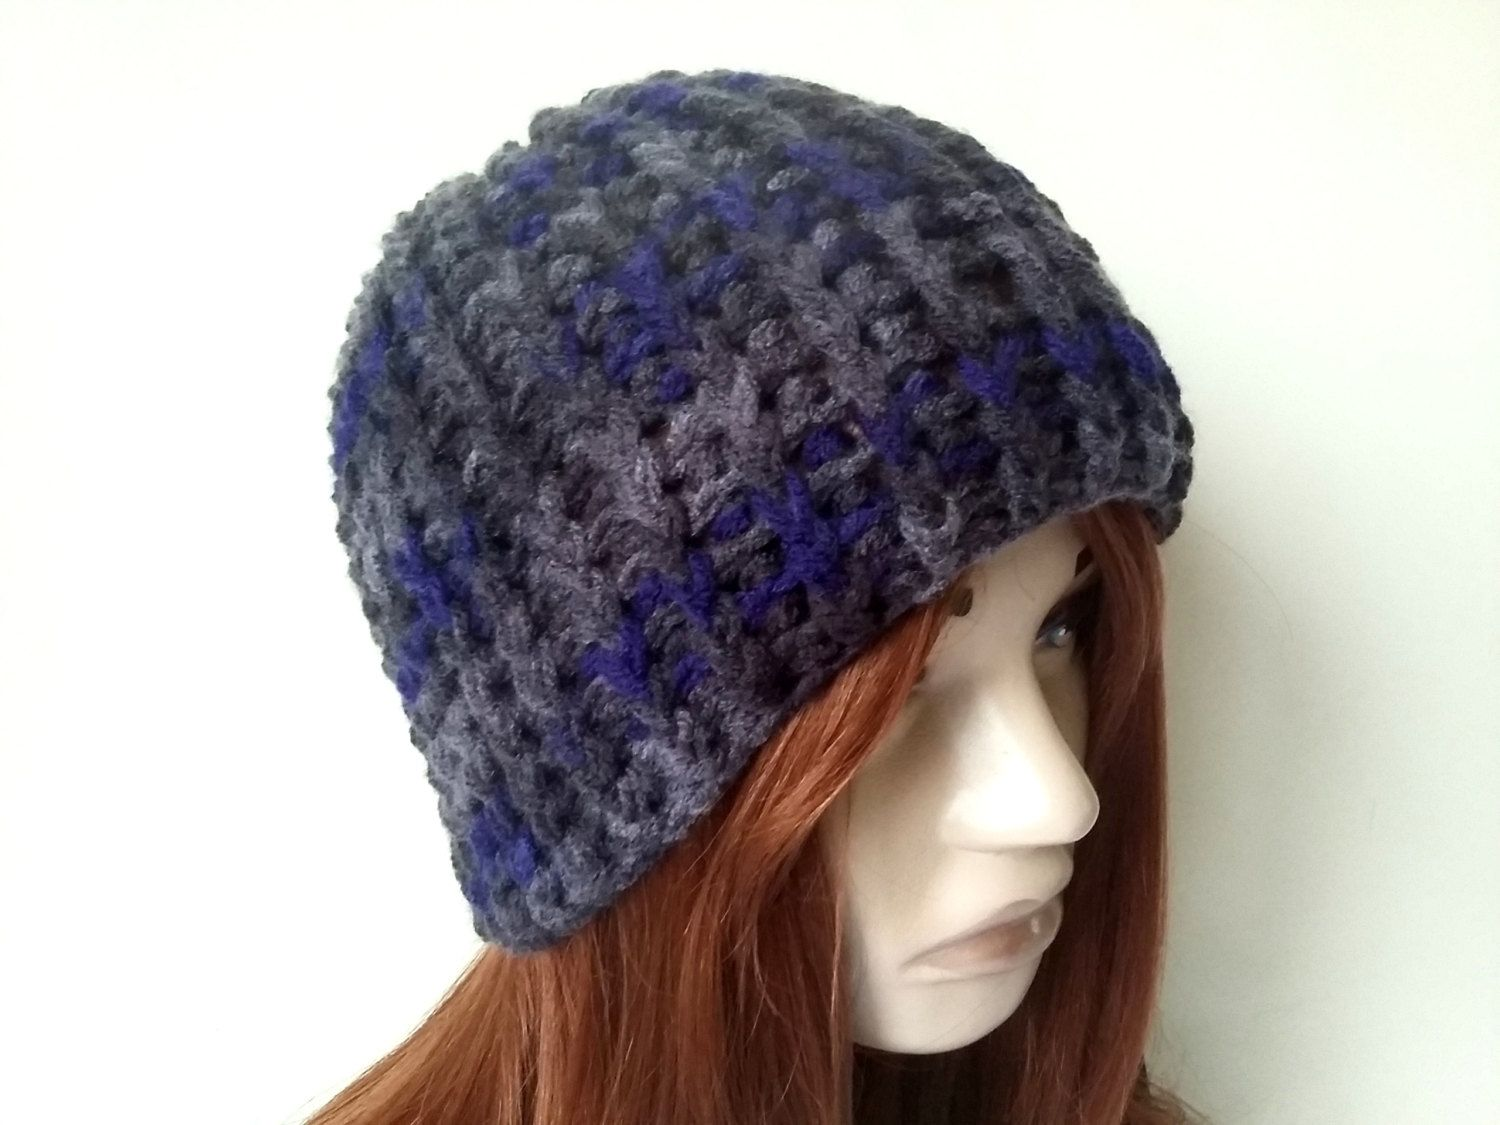 Unisex Knitted Hats, Men Knitted Hats, Women Knitted Hat, Hand Knitted Hats,  Men Crochet Hats, Gray Men Hats, Winter Knitted Hats, Men Bere 100% handknit,  ...